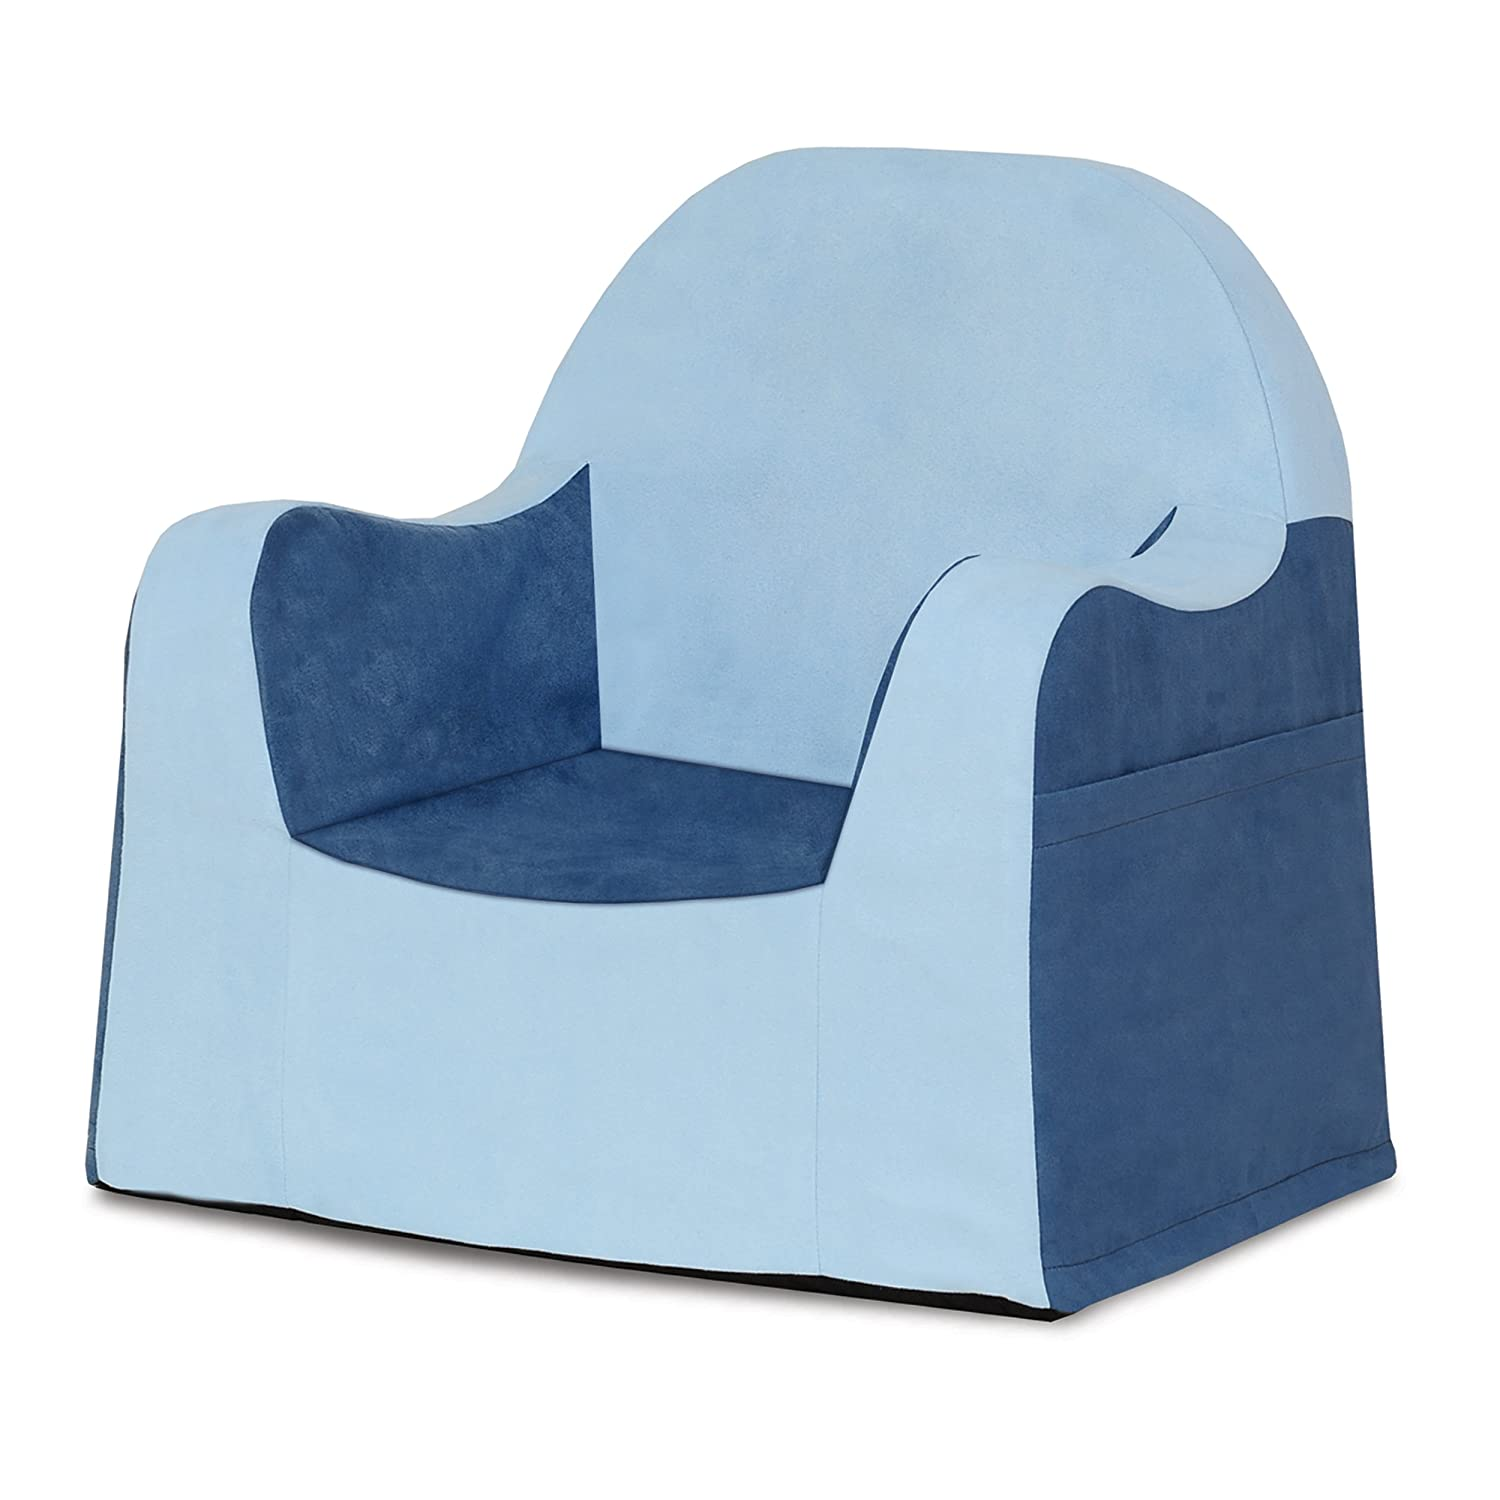 P'kolino PKFFLRALB Little Reader Chair - Light Blue Pkolino P' kolino